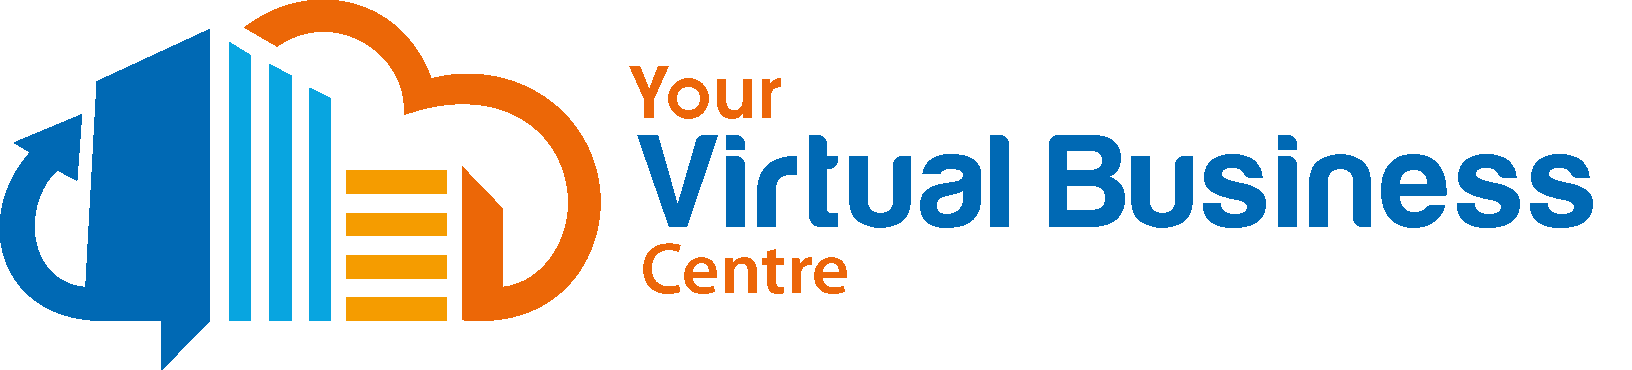 Your Virtual Business Centre WA Pty Ltd